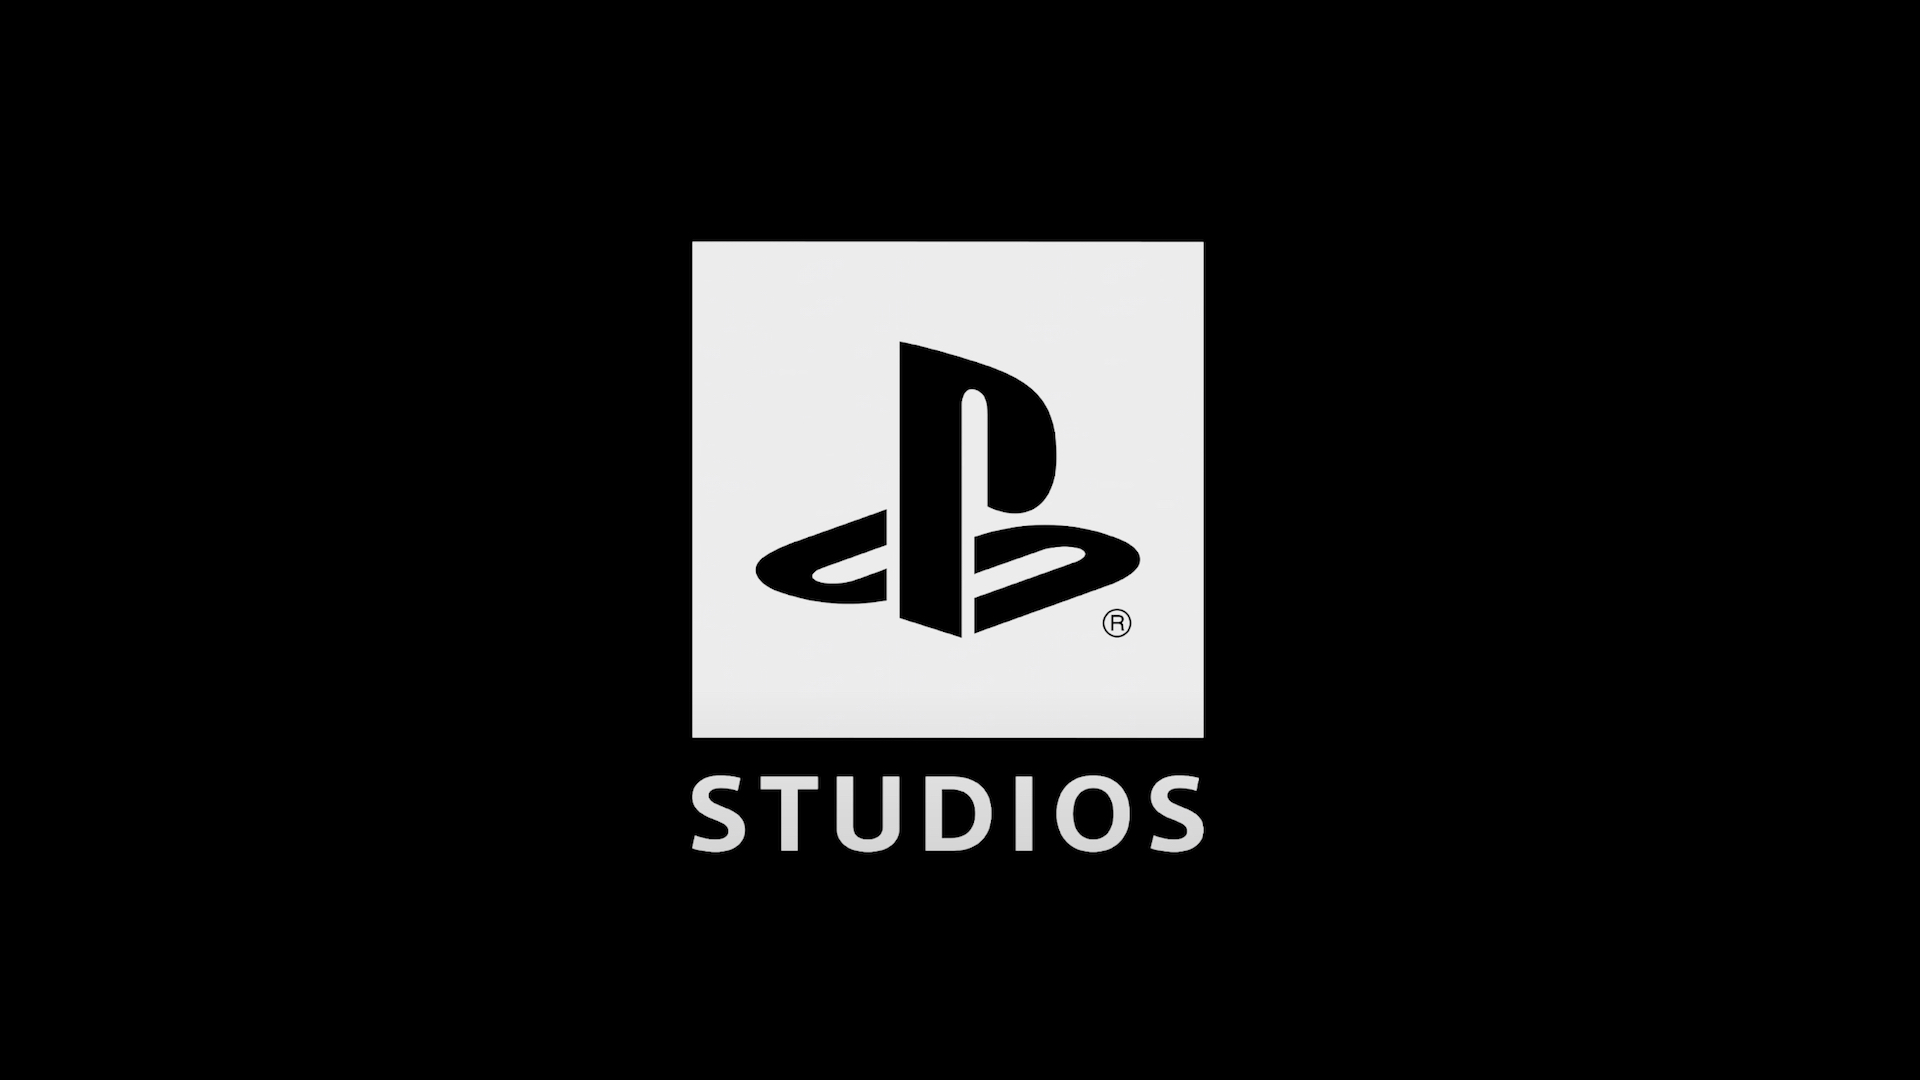 PlayStation Studios